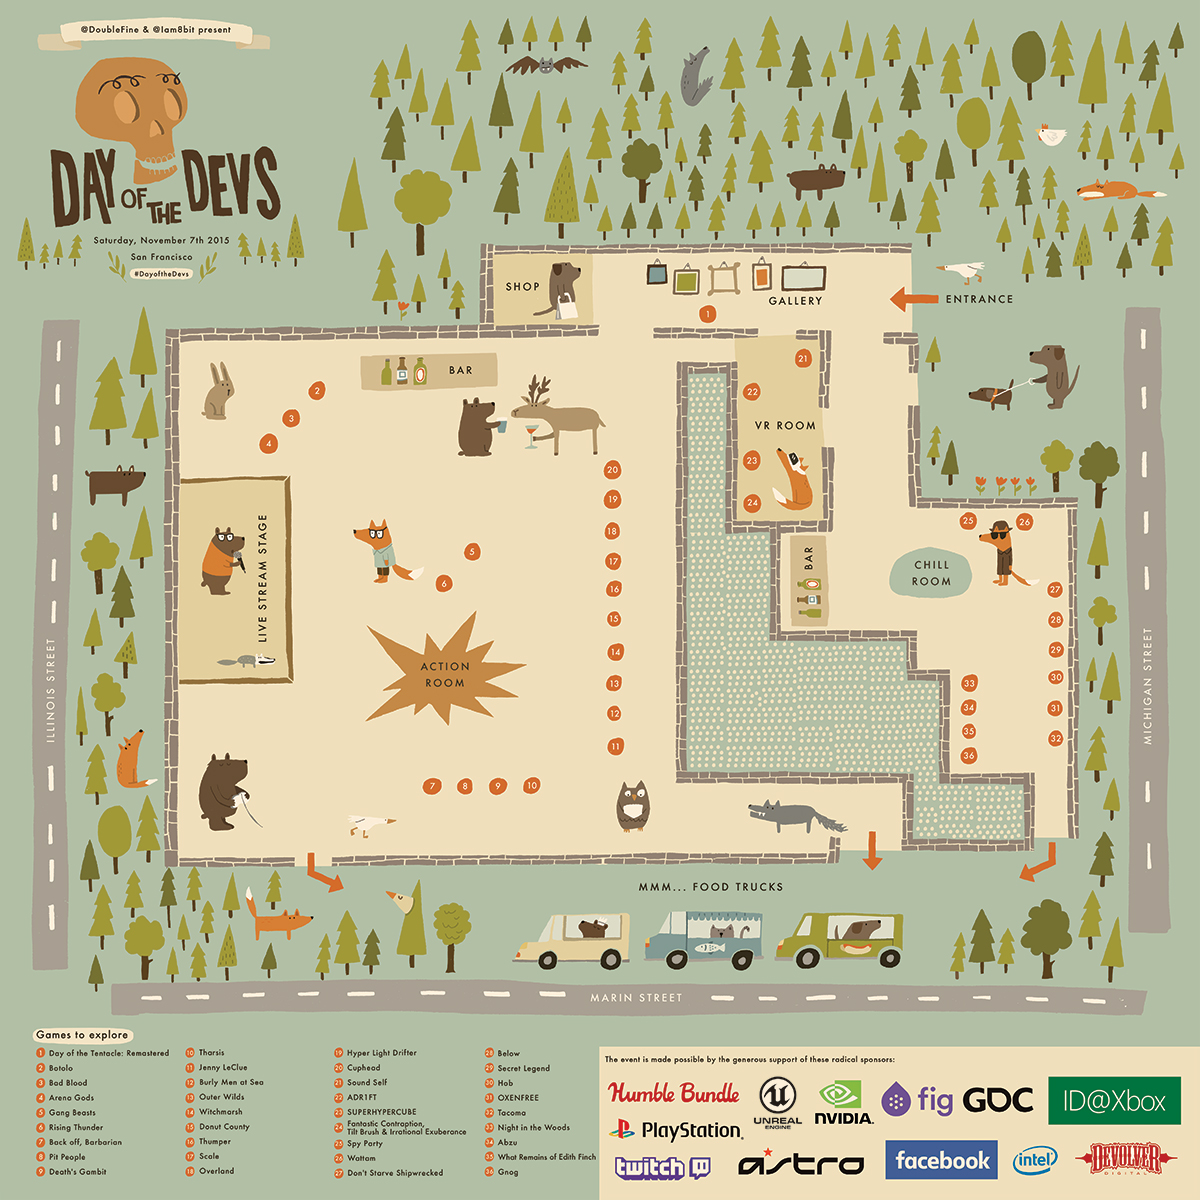 wiehle_day_of_devs_2015_map_front